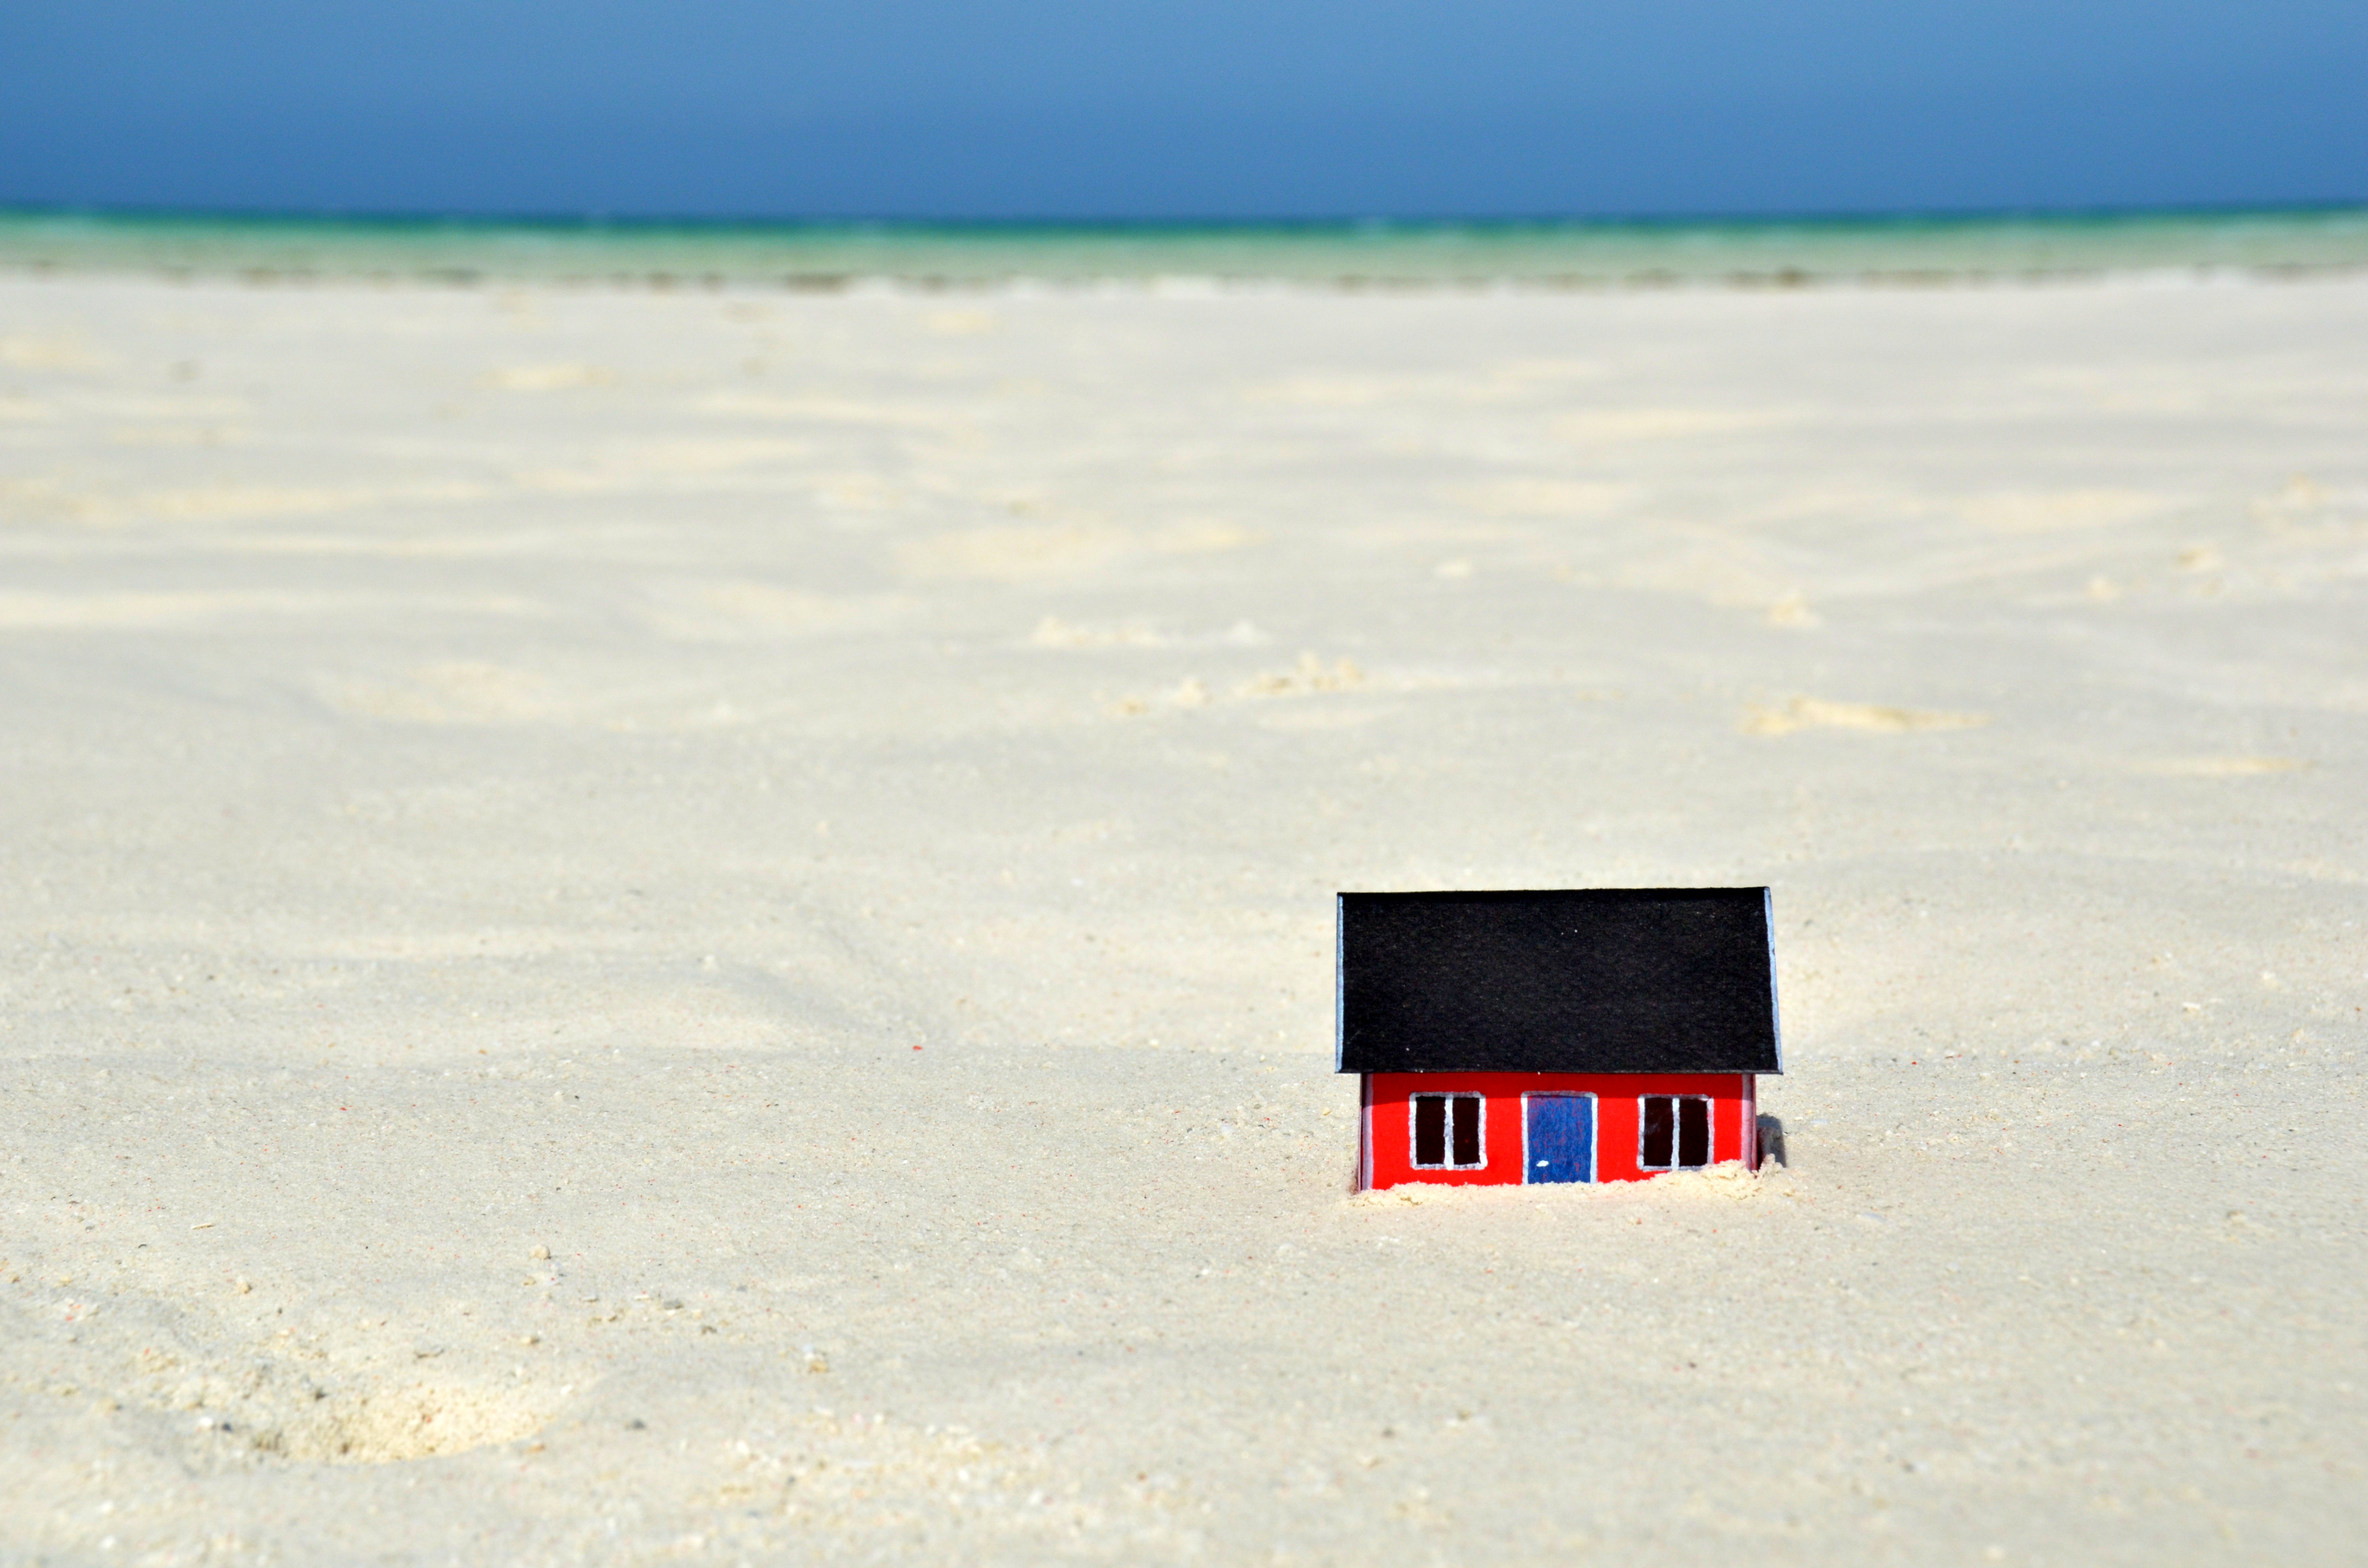 House on the sand bank